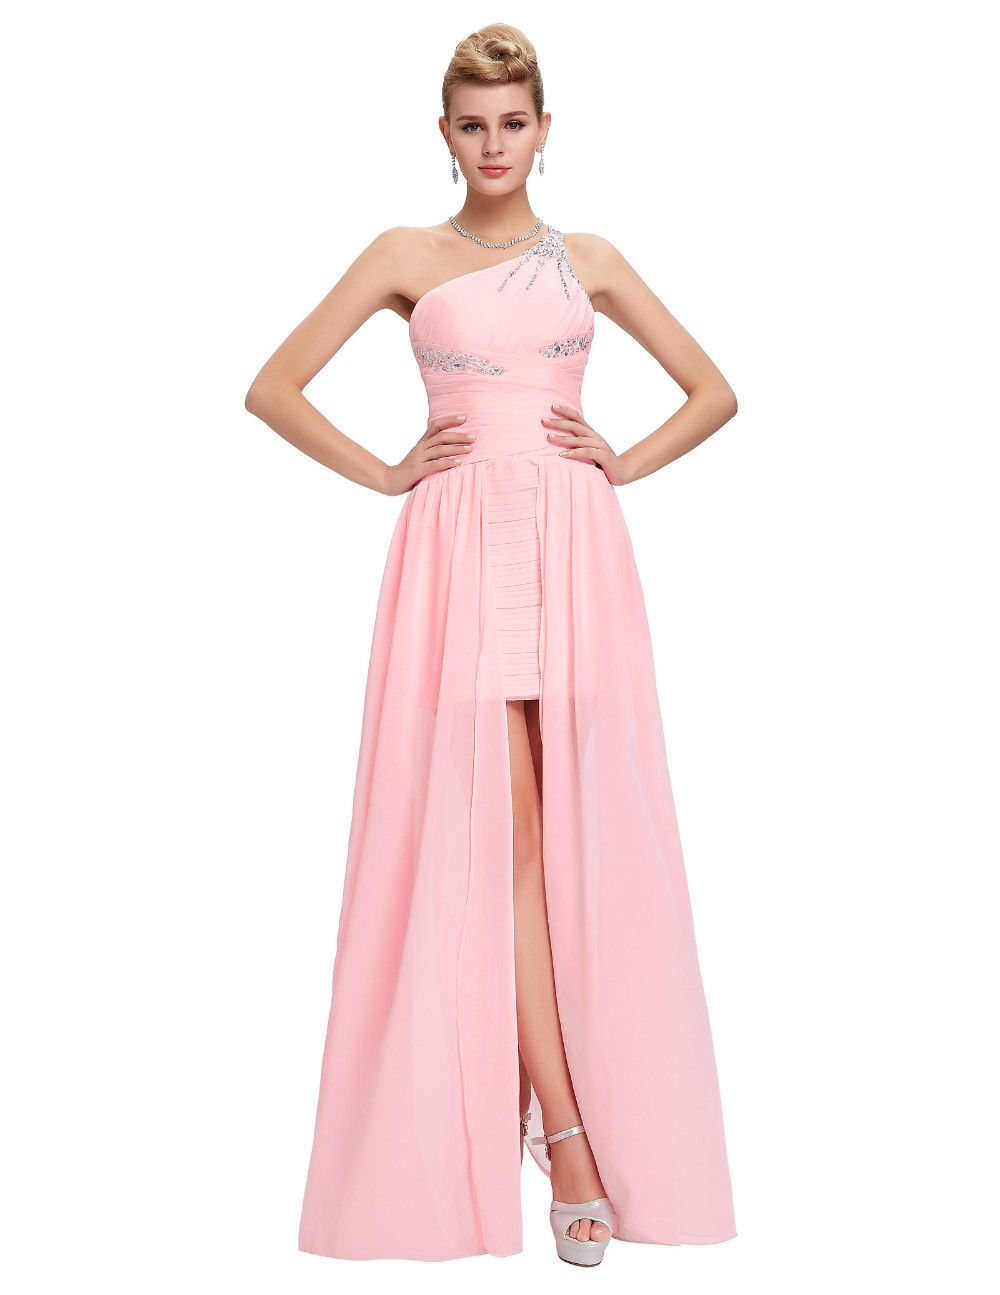 Elegant one shoulder pink short front long back chiffon bridesmaid